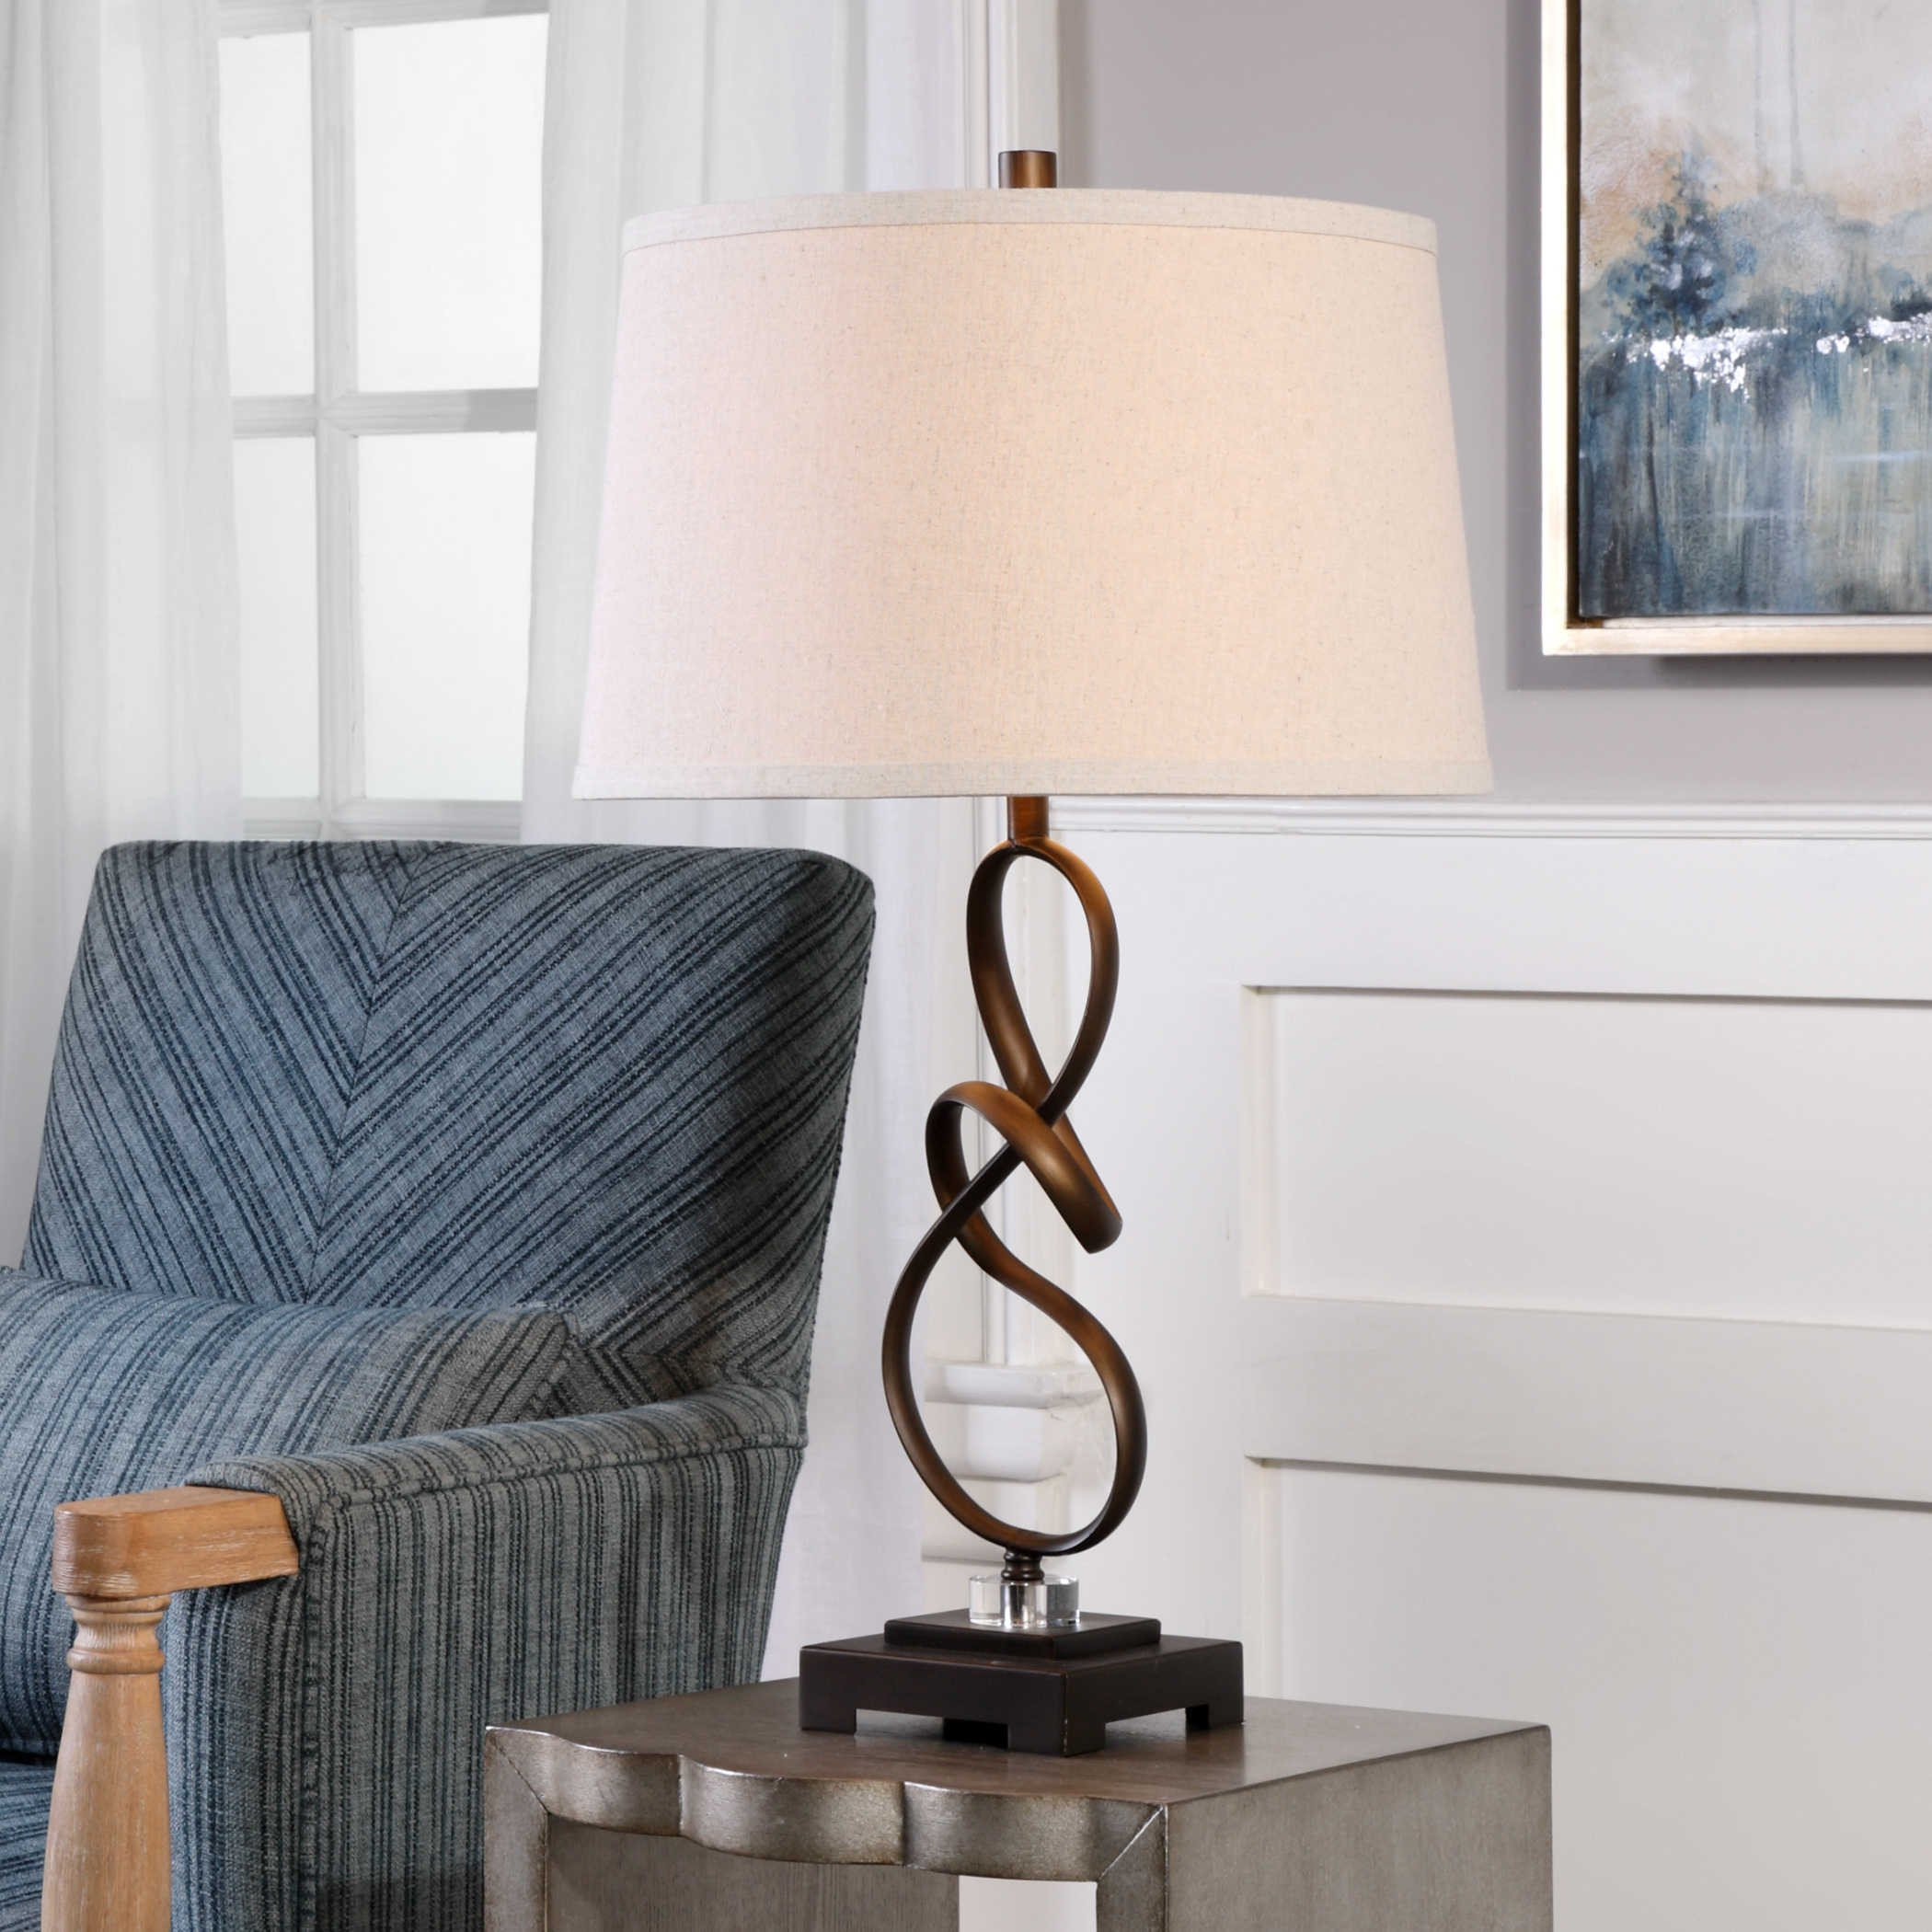 Decorative Light for Bedroom New Tenley Table Lamp